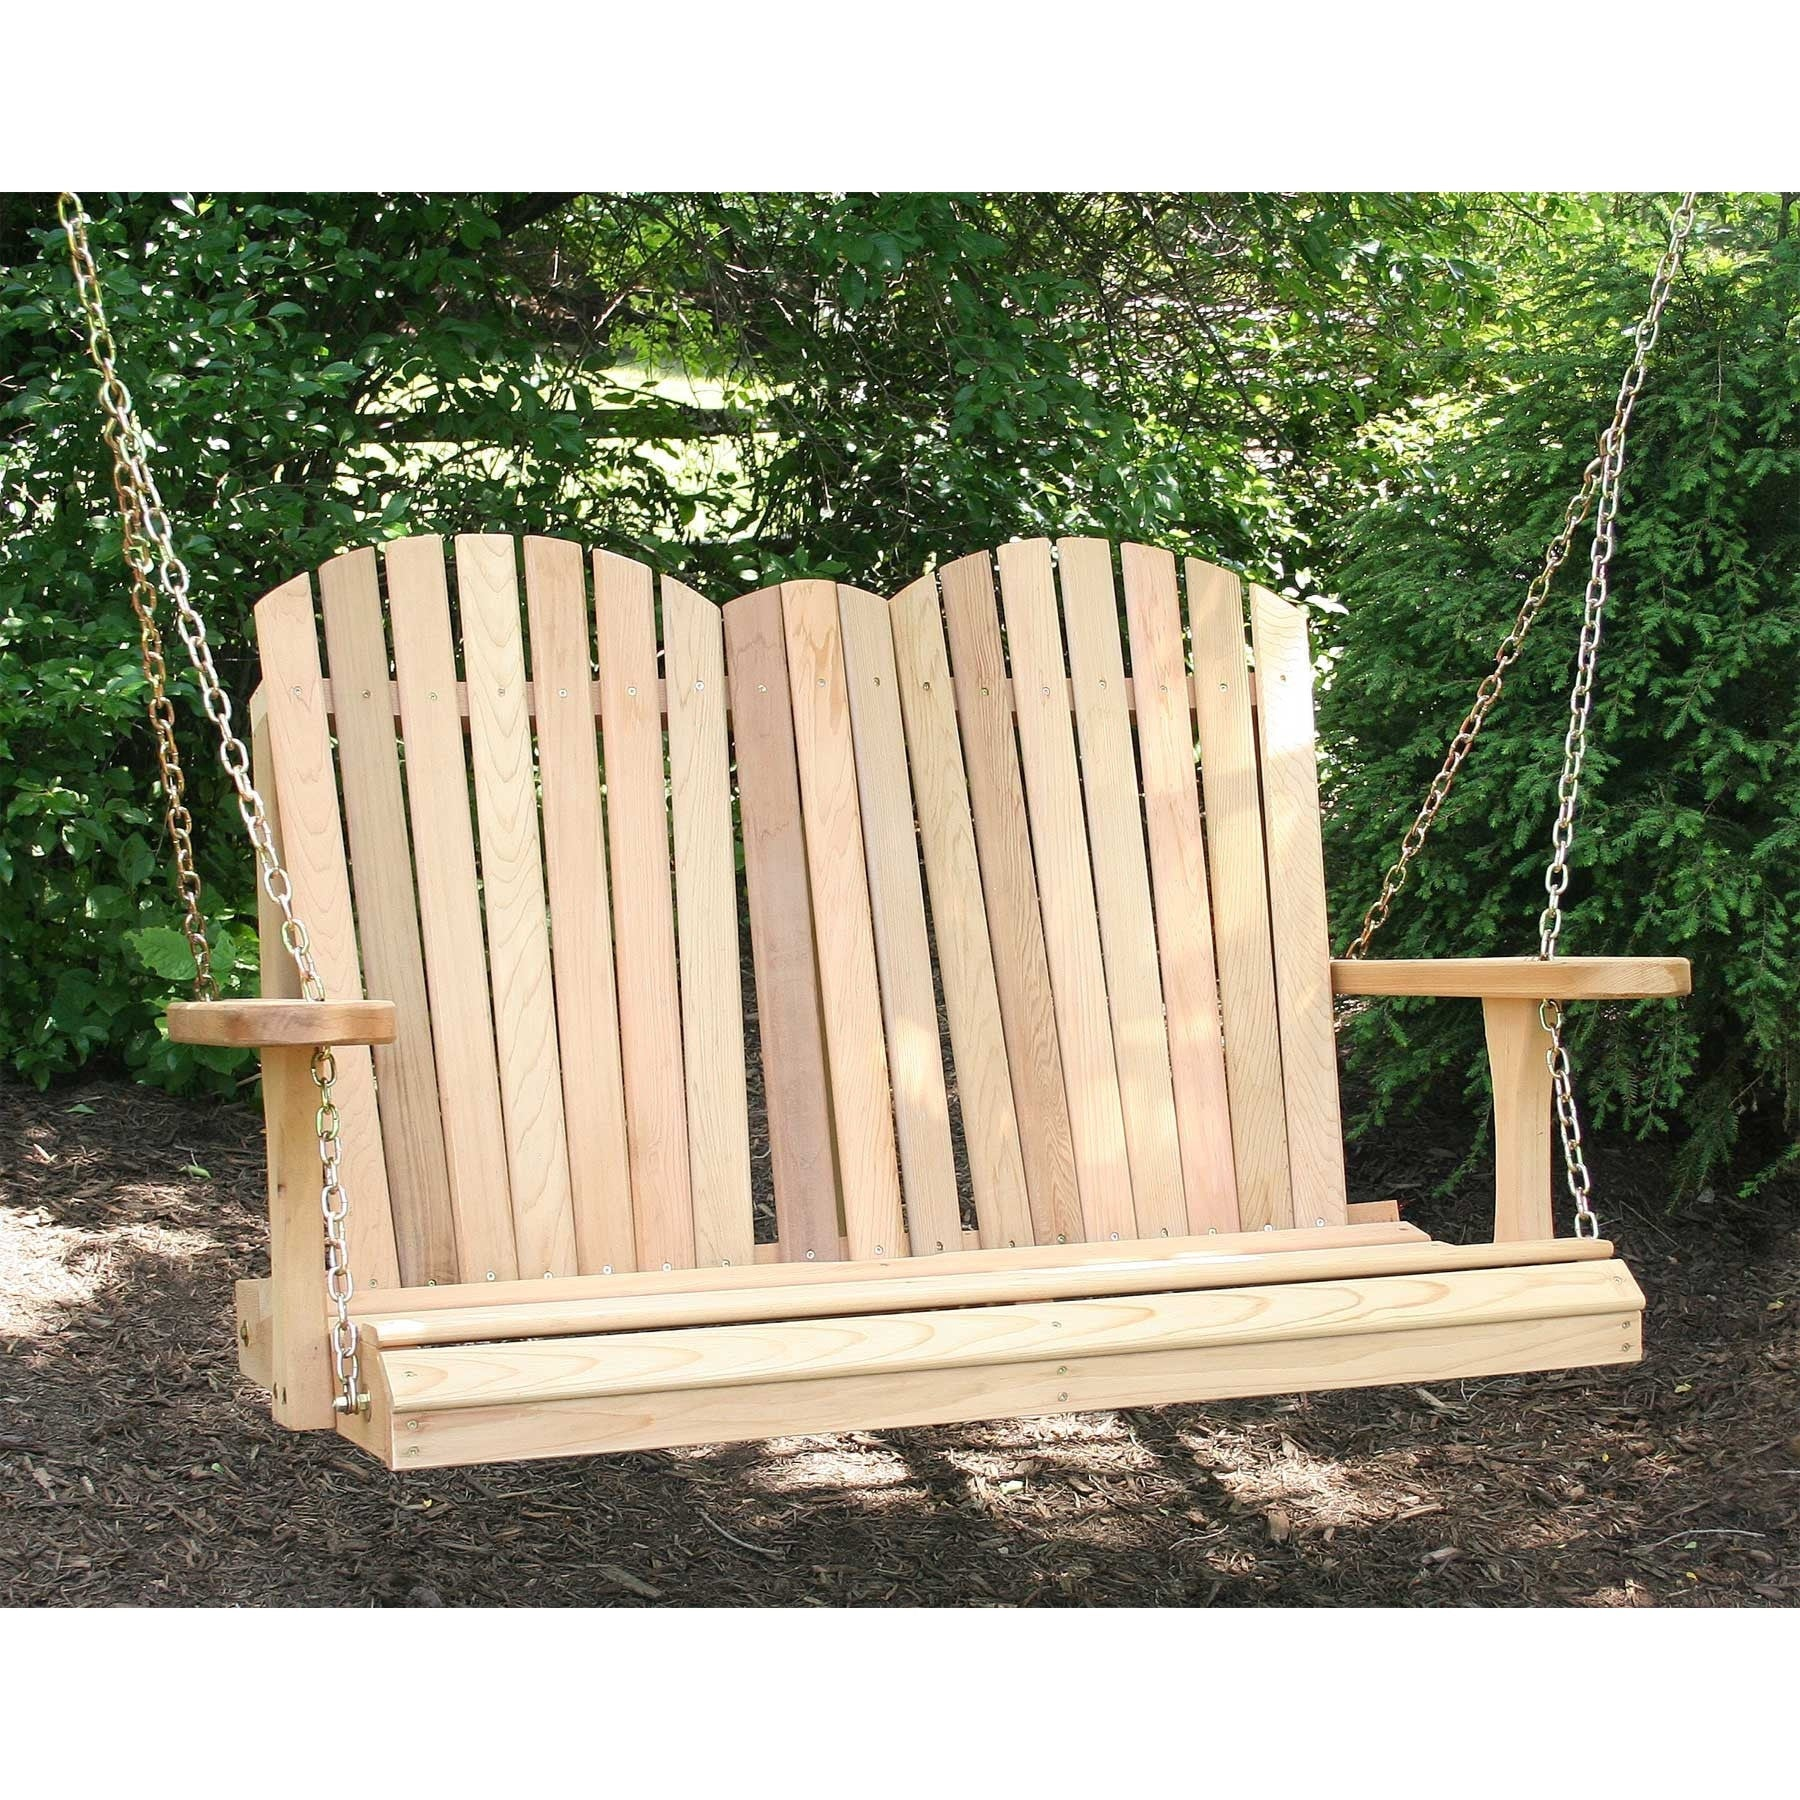 Cedar Porch Swing by Creekvine Designs - Swings and More